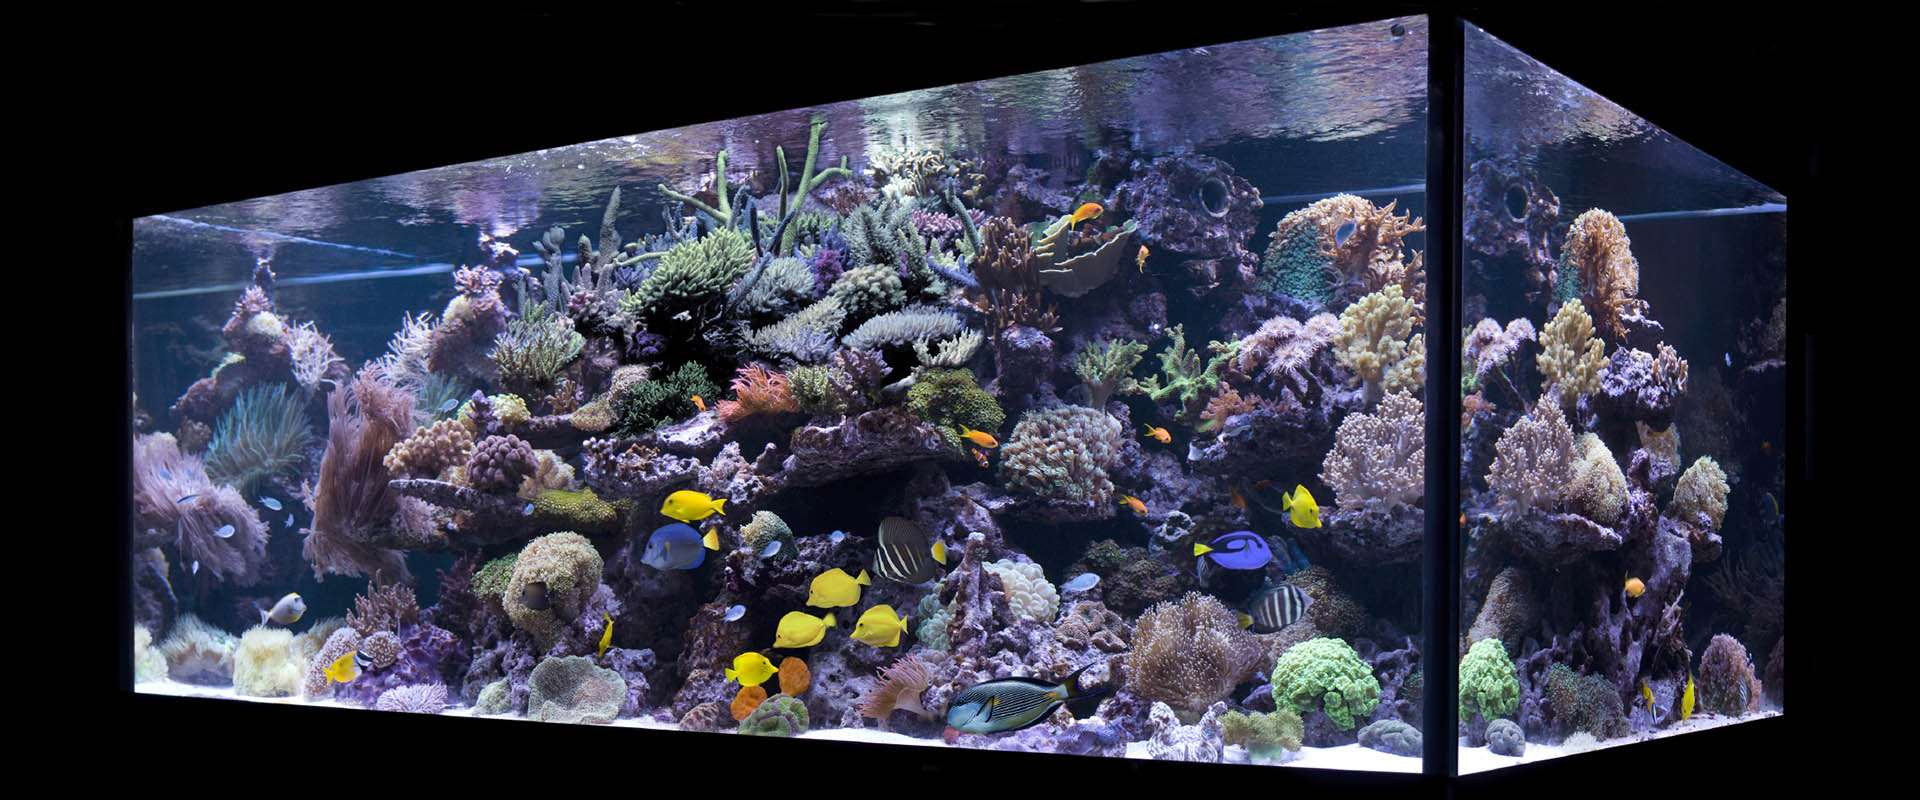 Aqualife manufactures residential glass aquariums or acrylic aquariums